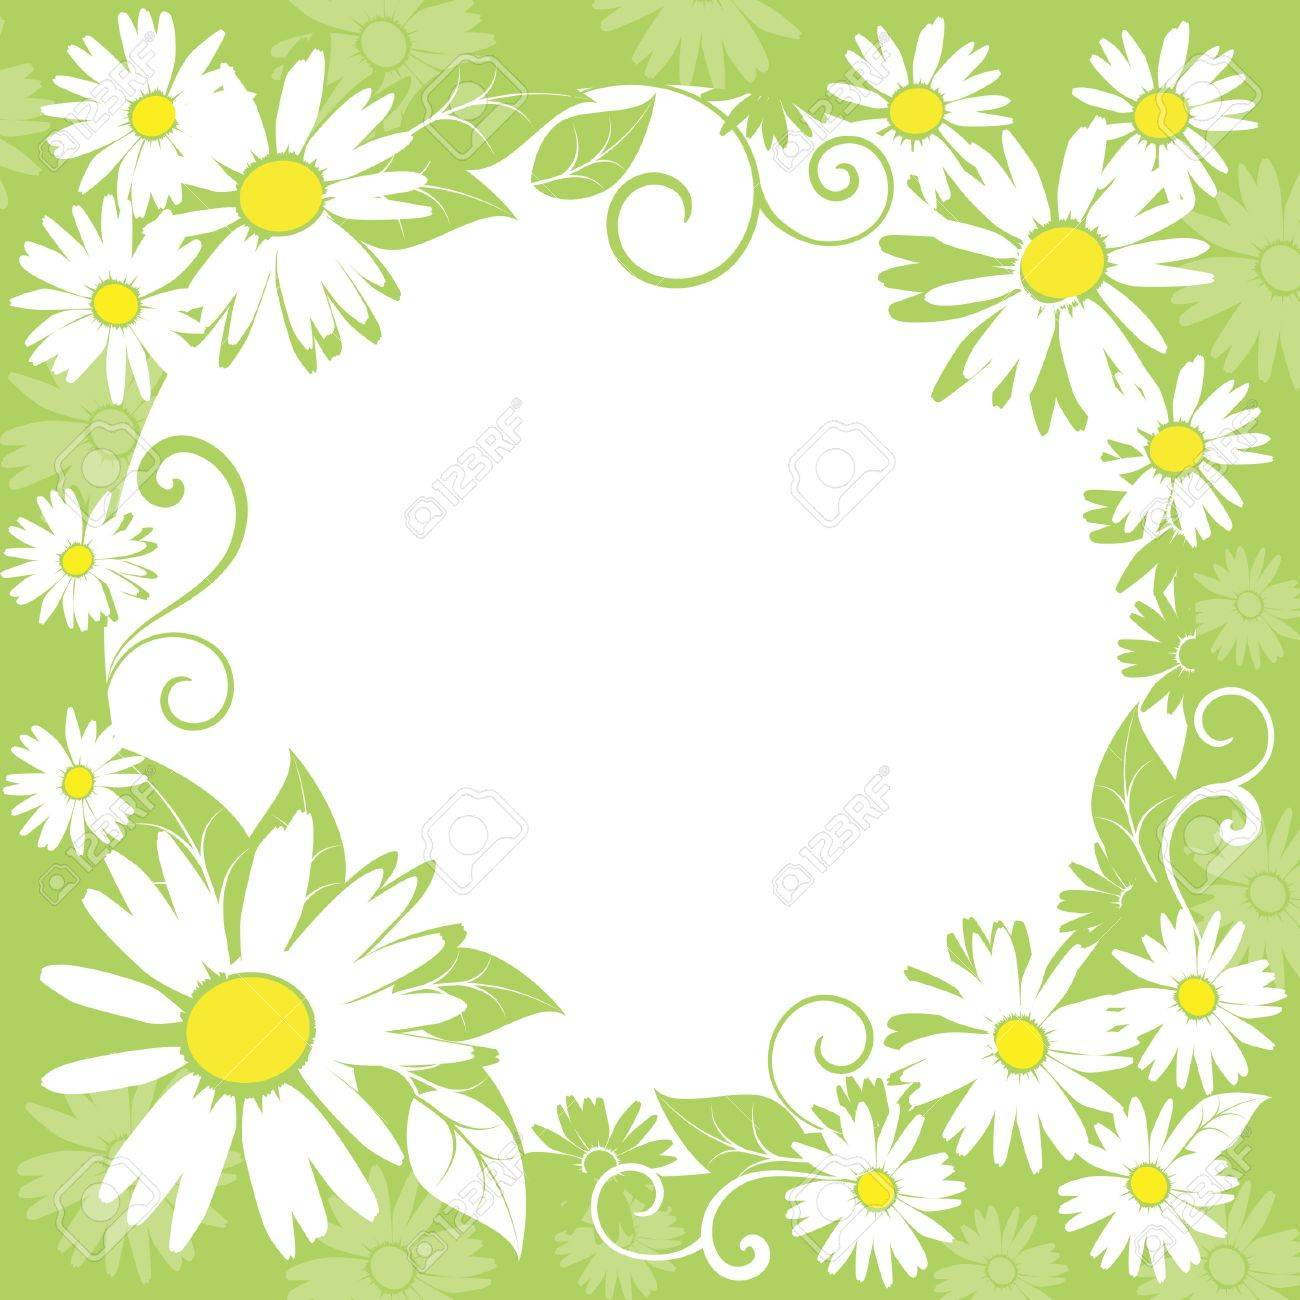 funny spring floral border. Stock Vector - 9295325